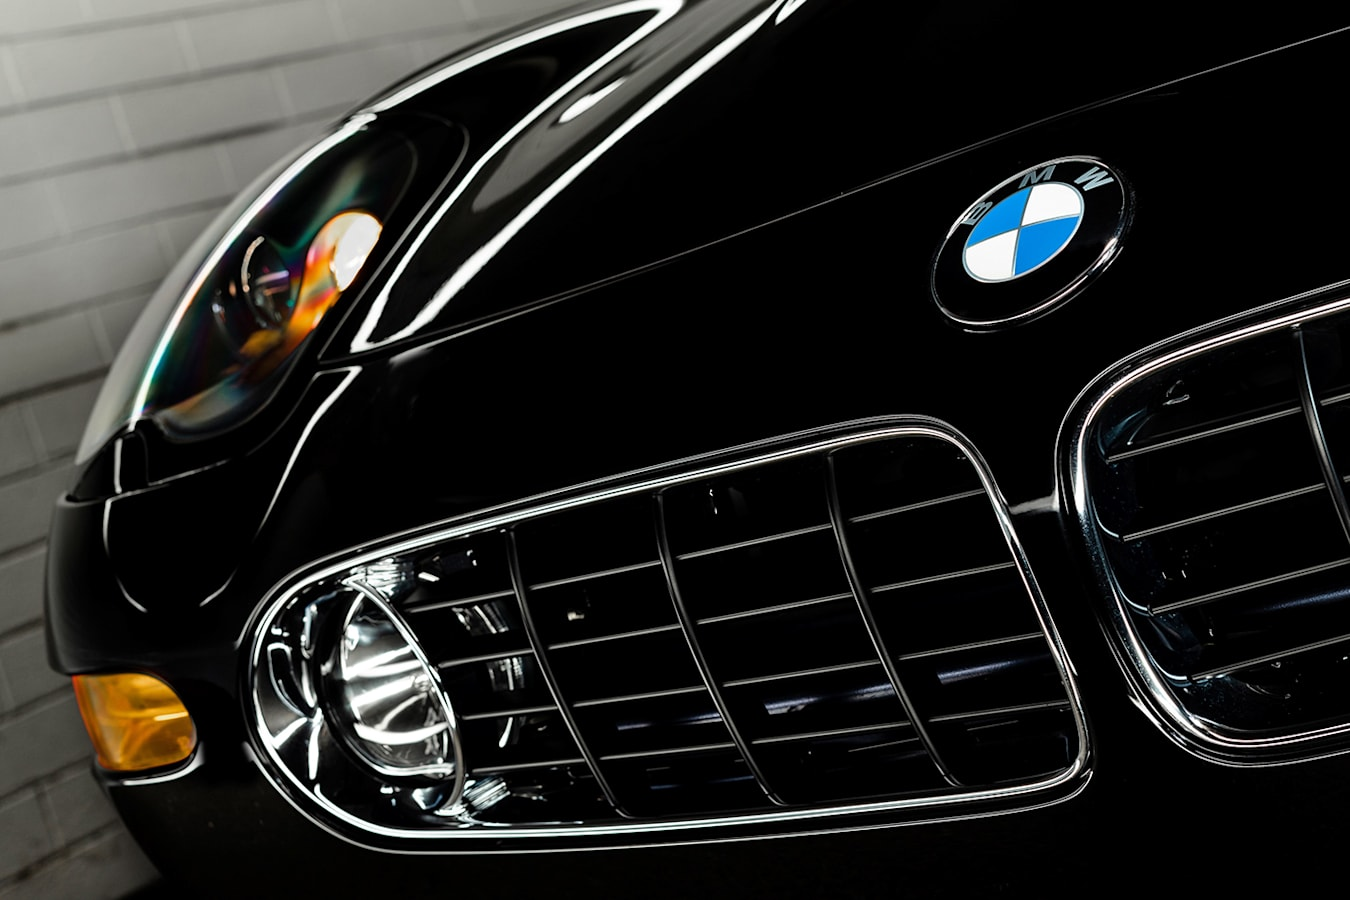 BMW Z8 front grille